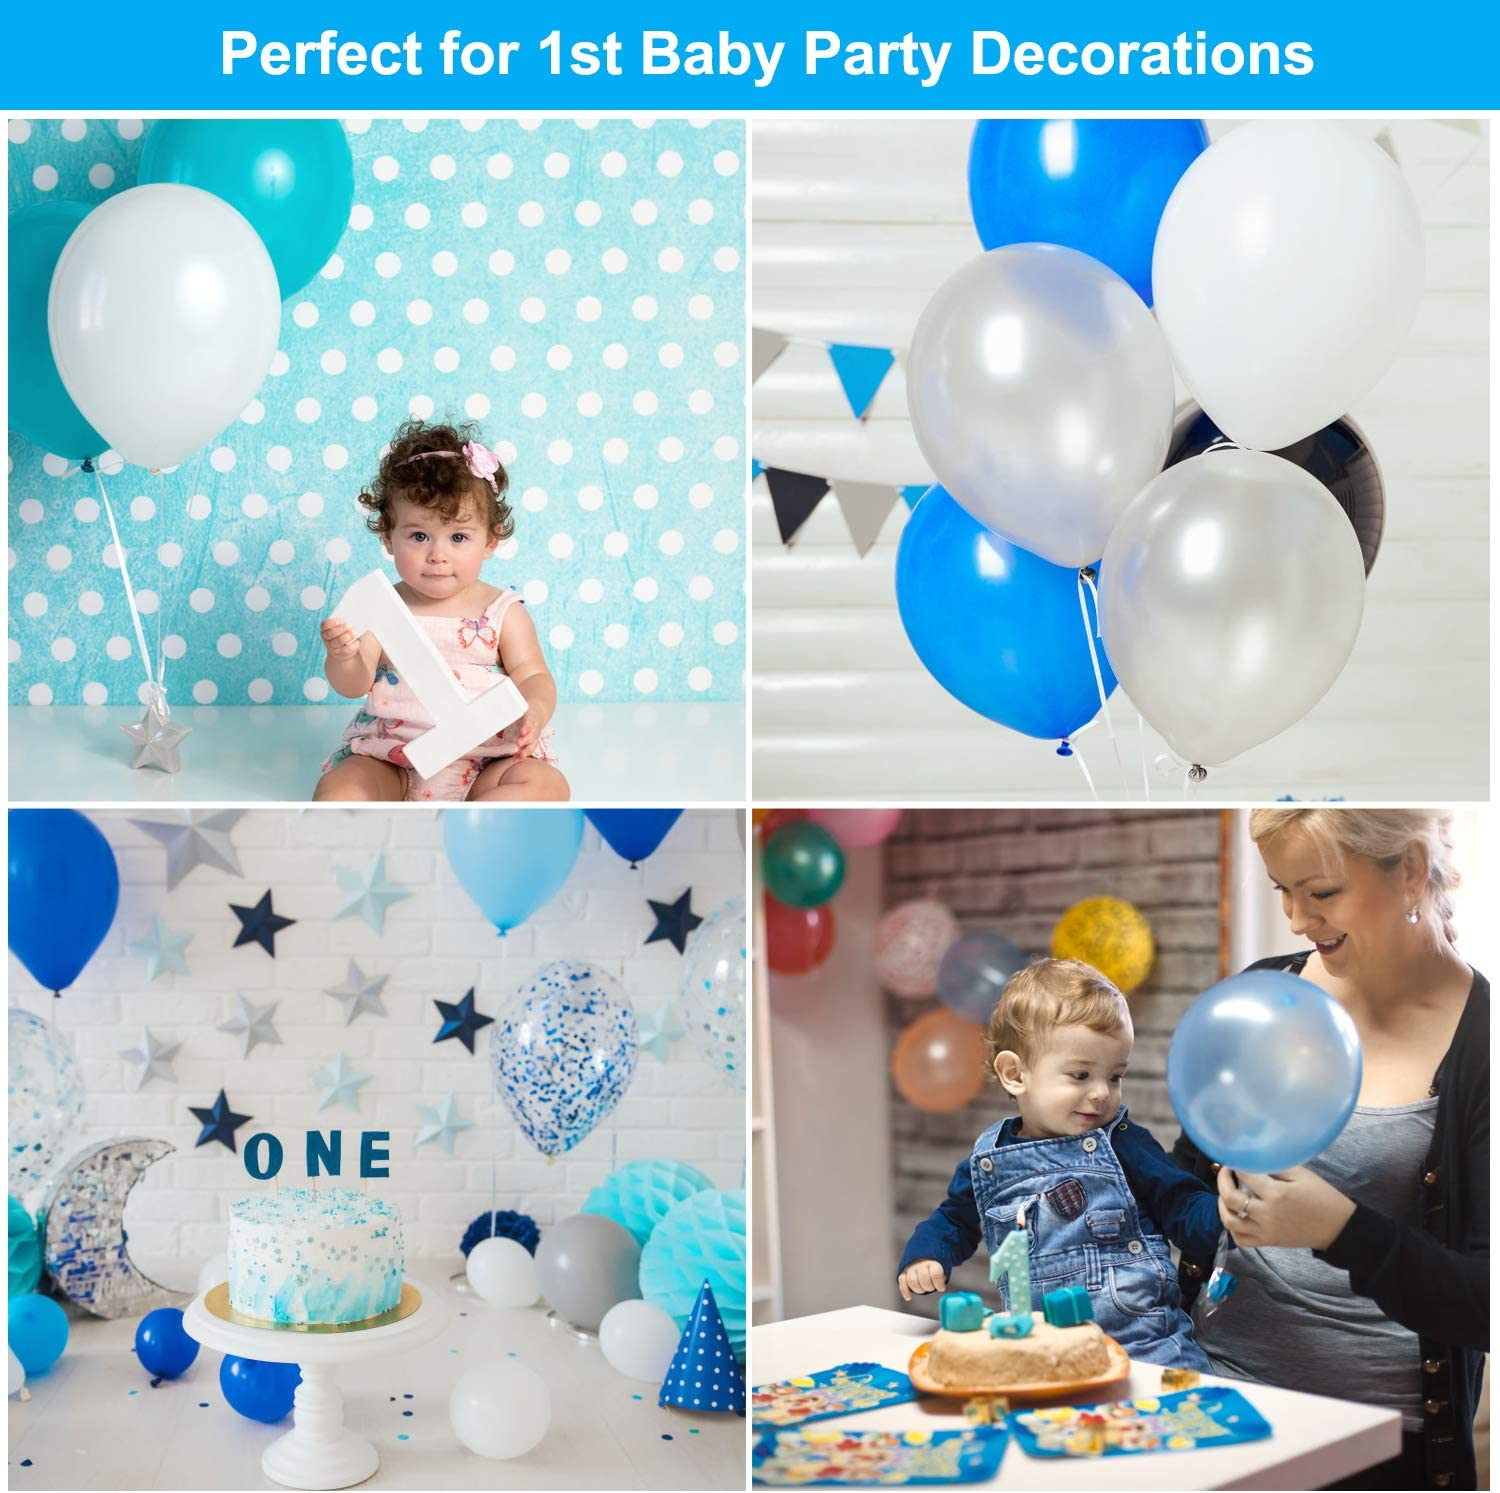 Happy Birthday Balloon Banners Blue Latex Balloons and Foil Balloons with Ribbons for Boys First Birthday Party Supplies Blue 1st Birthday Decorations Baby Boy